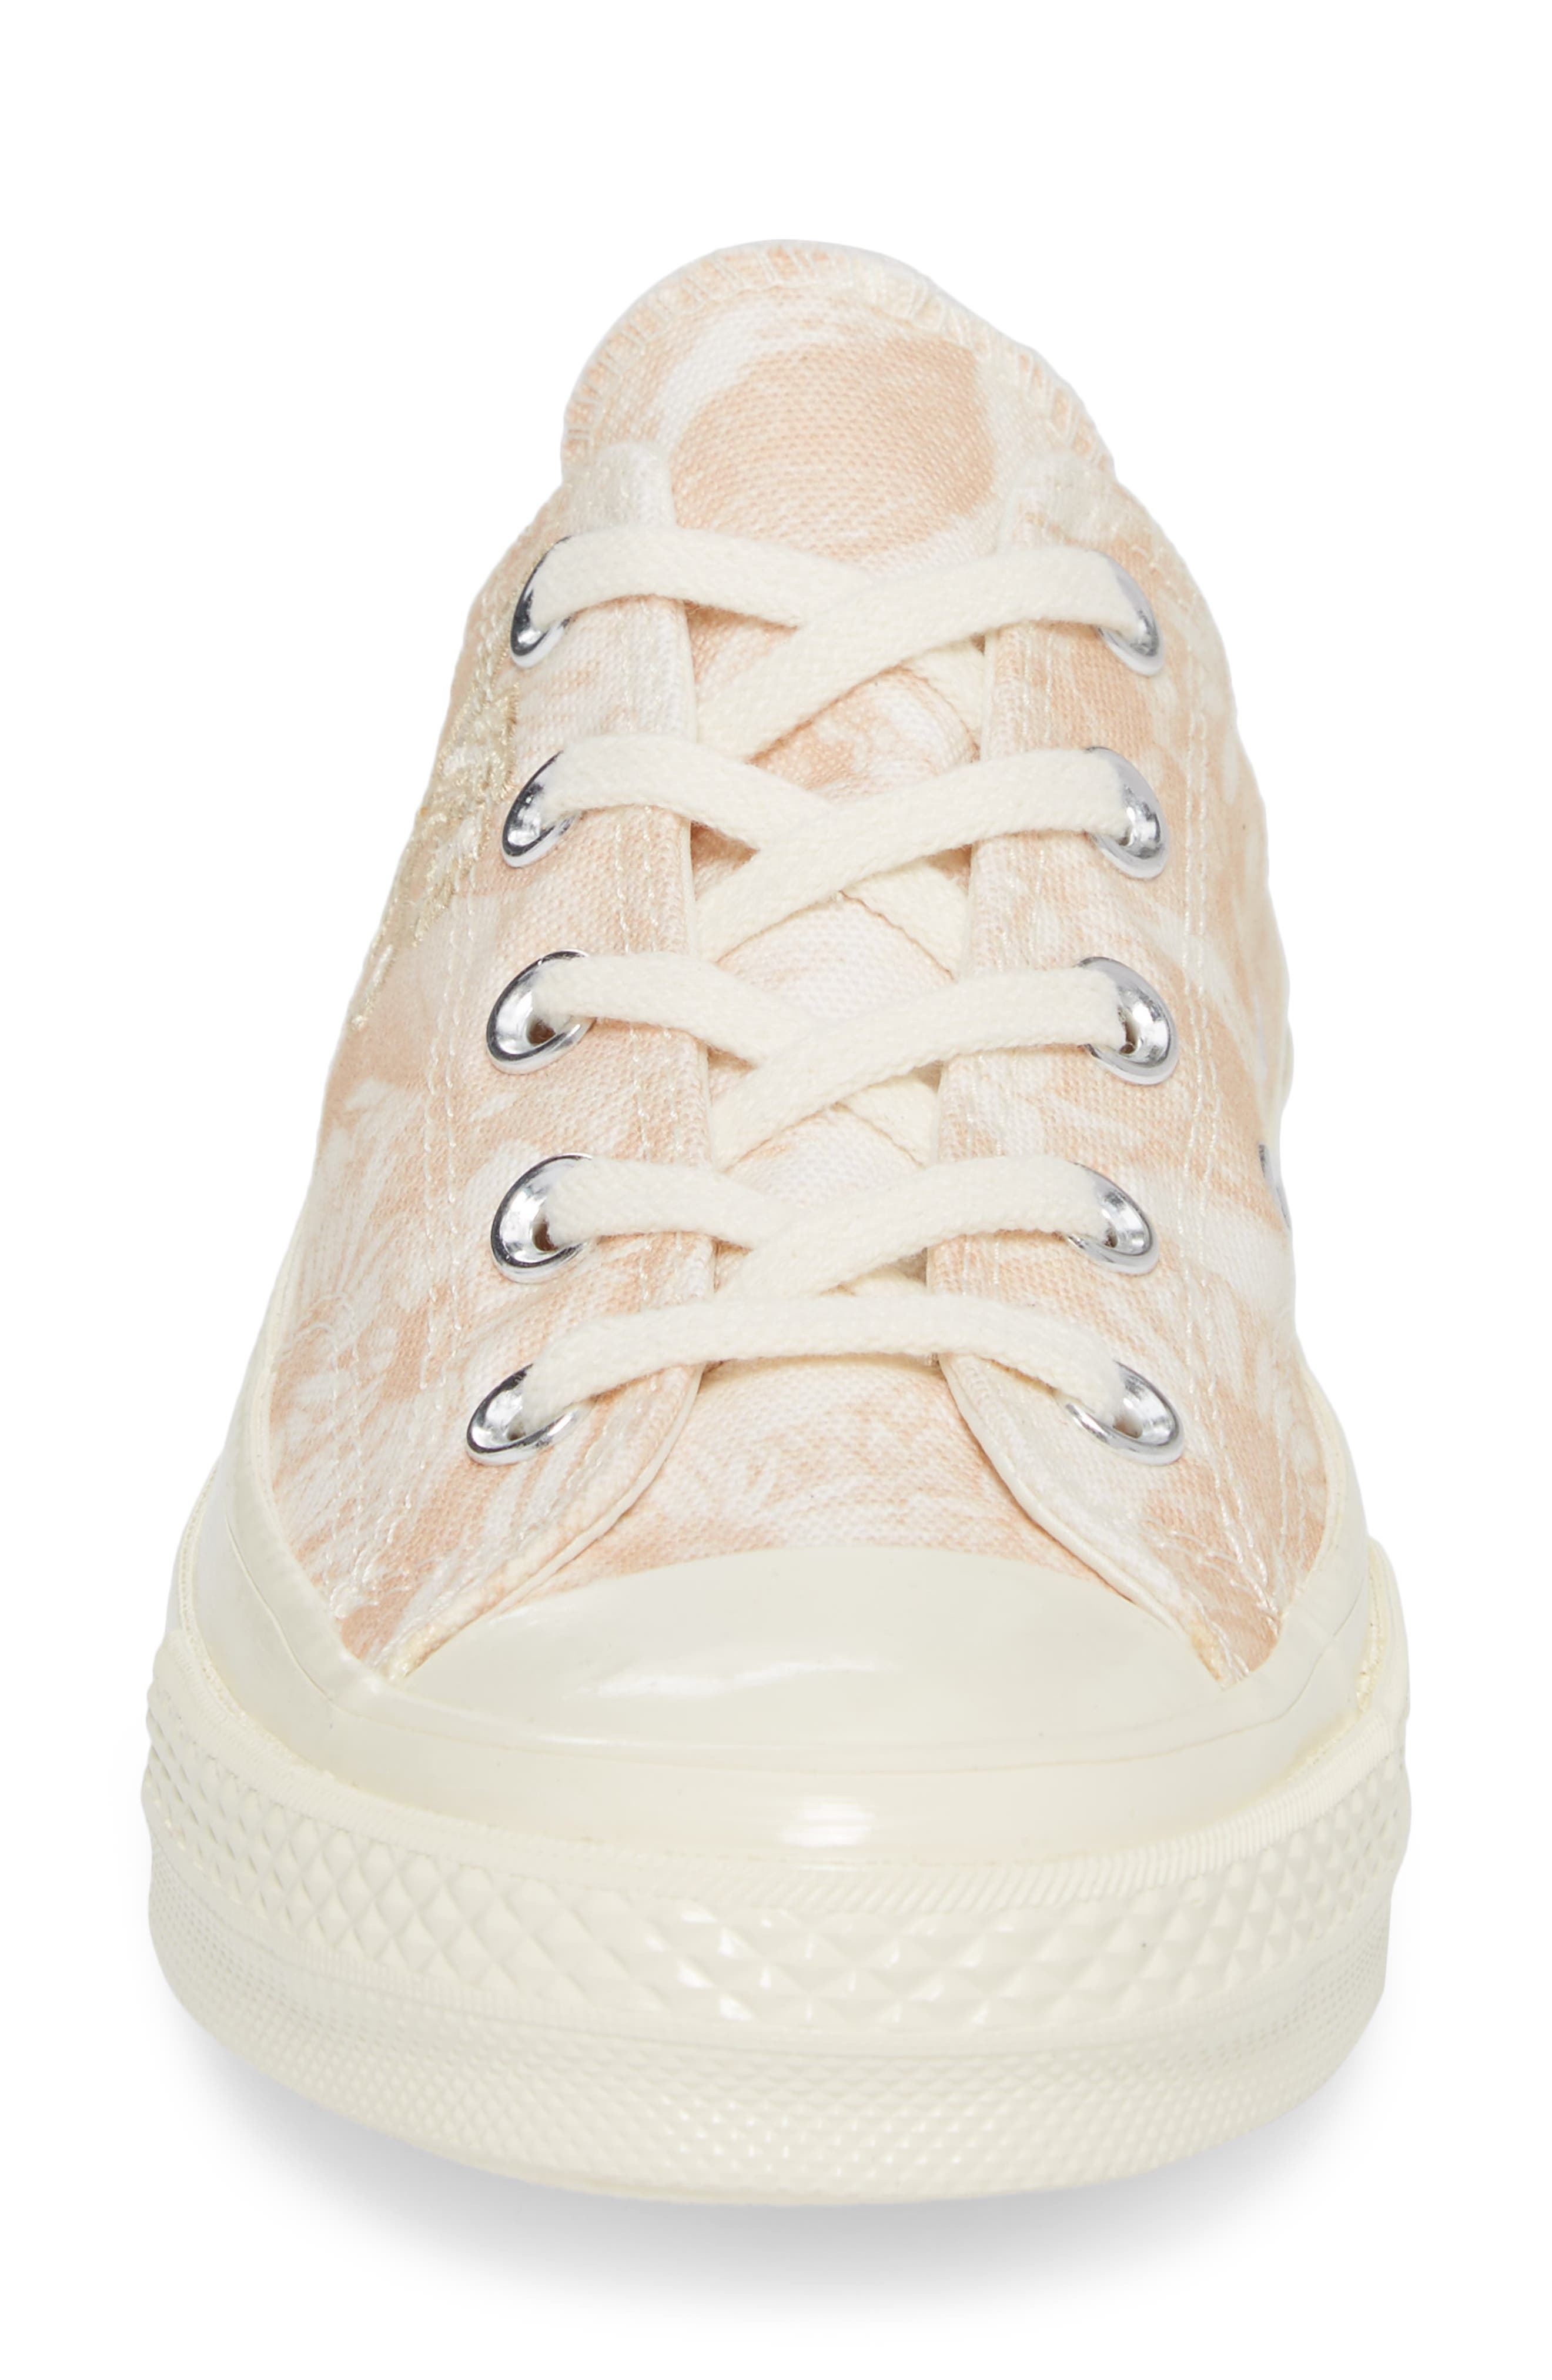 Chuck Taylor<sup>®</sup> All Star<sup>®</sup> 70 Spring Forward Sneaker,                             Alternate thumbnail 4, color,                             101